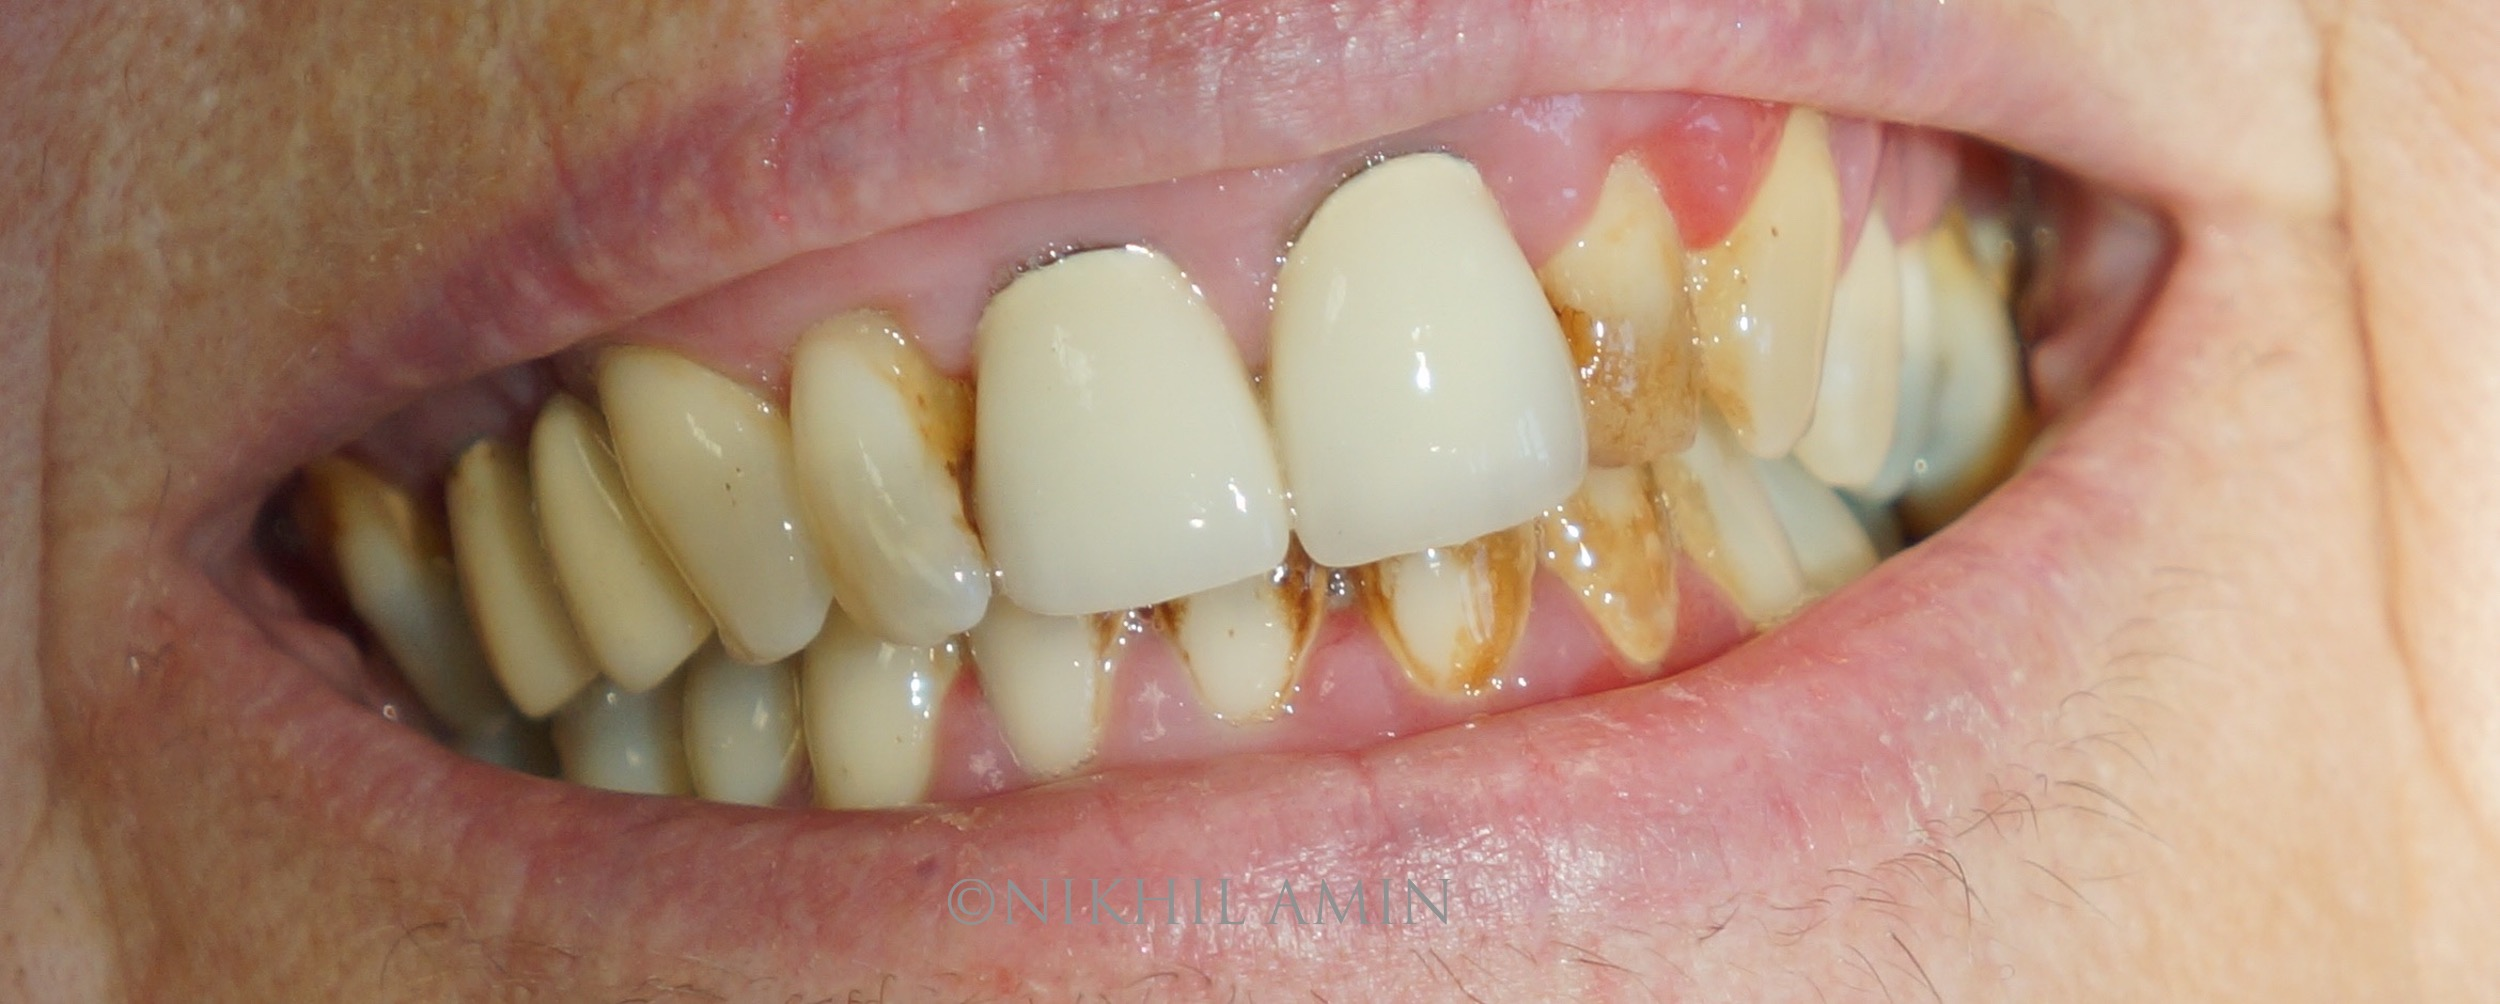 Before Treatment Teeth